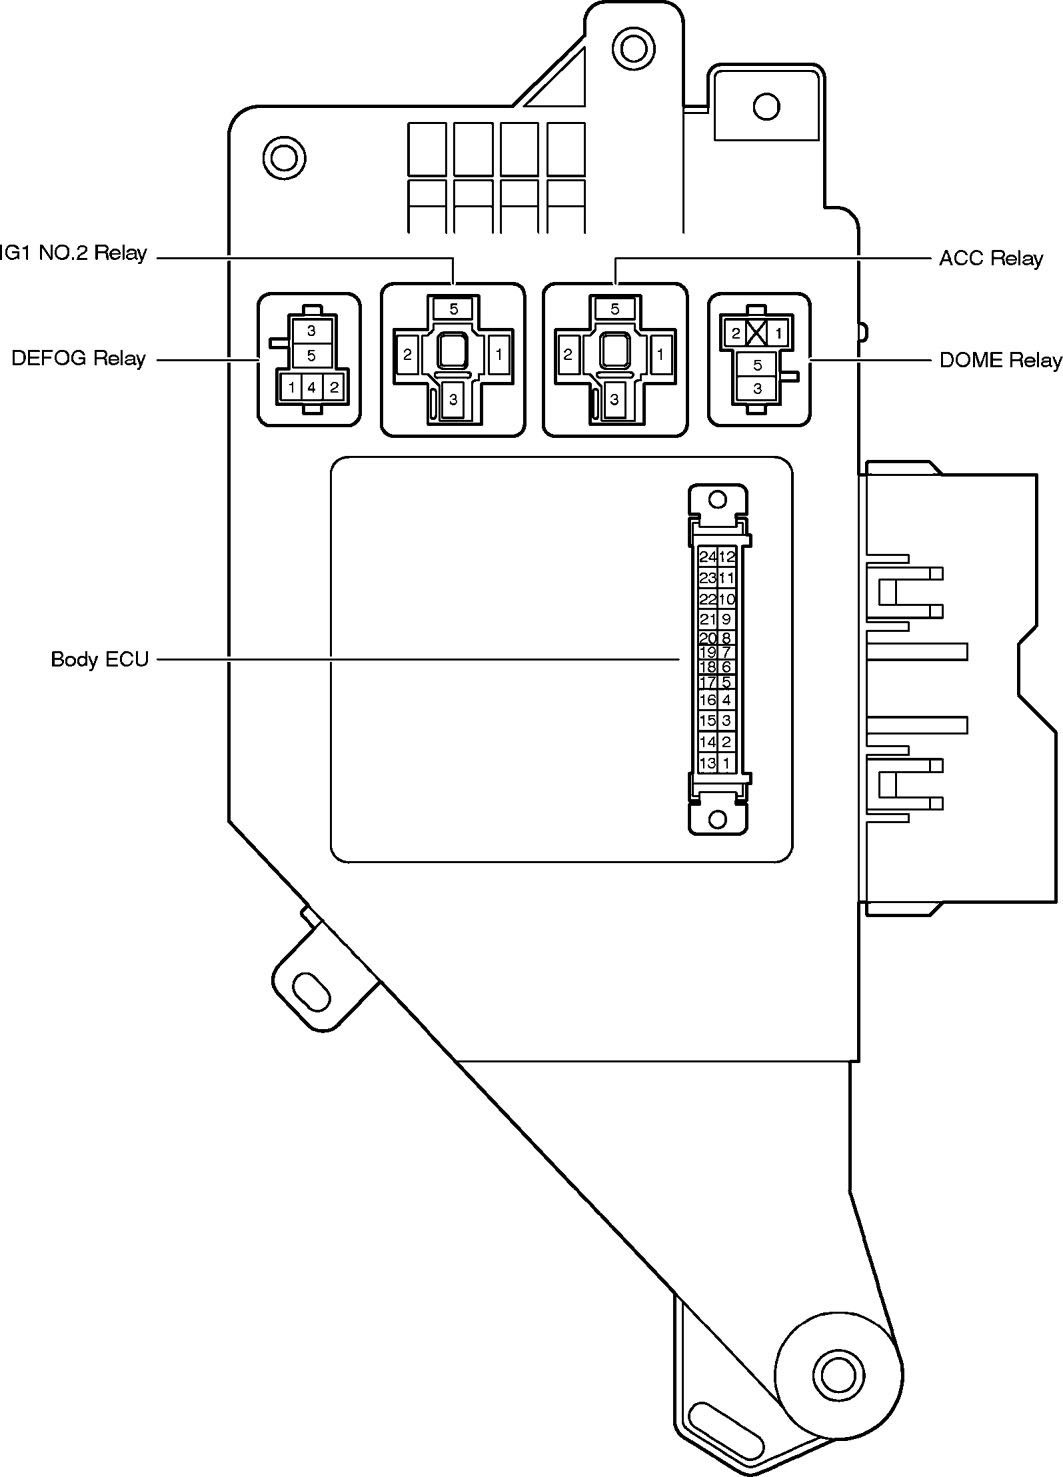 2001 Toyota Echo Fuse Box Diagram Wiring Library Land Cruiser 2005 Carknowledge